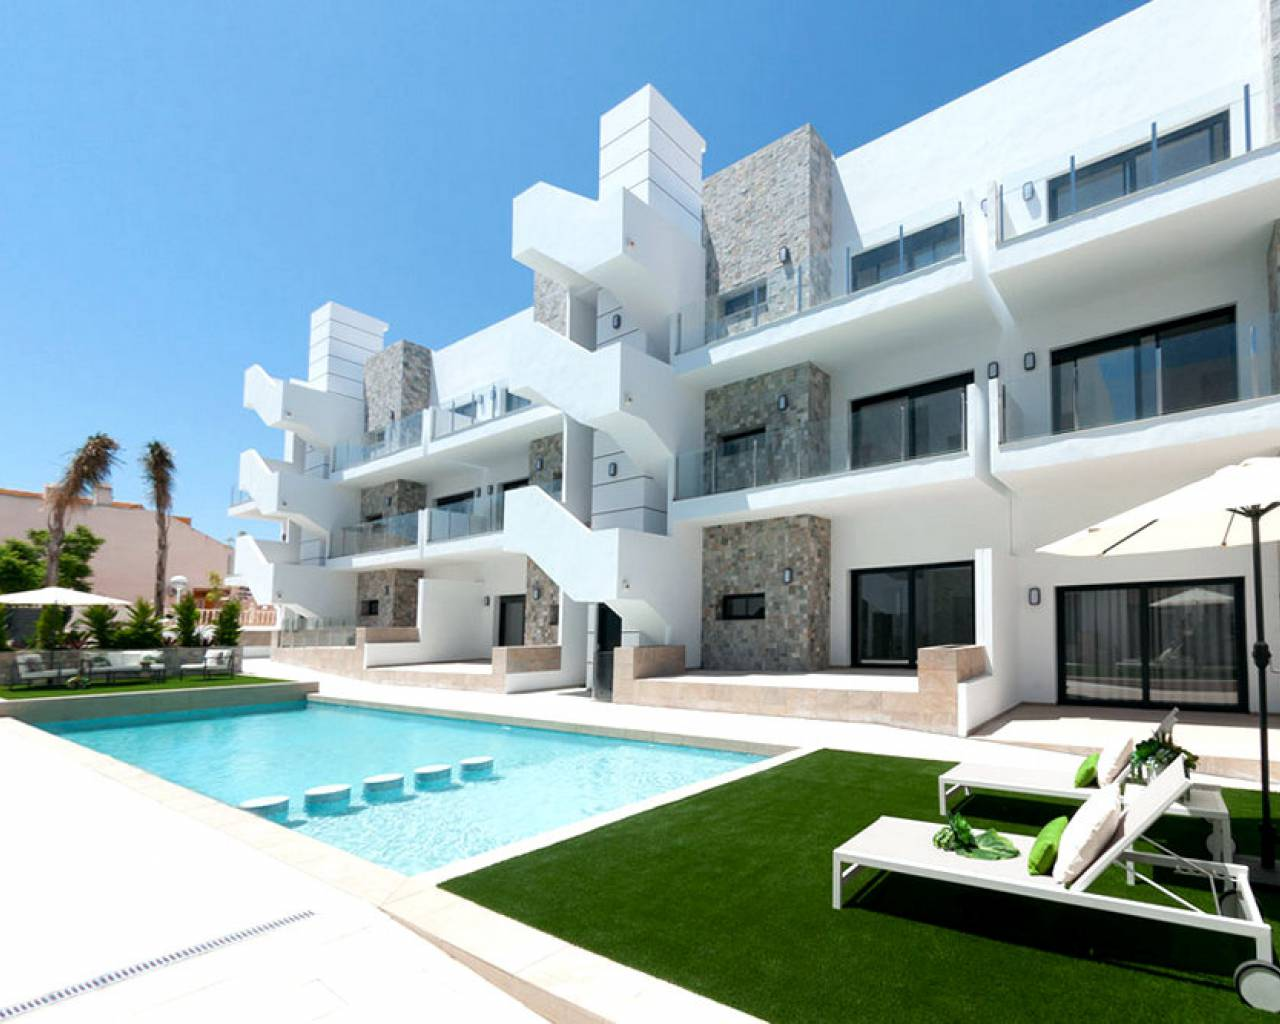 Apartment - Sale - Alicante - Arenales del Sol